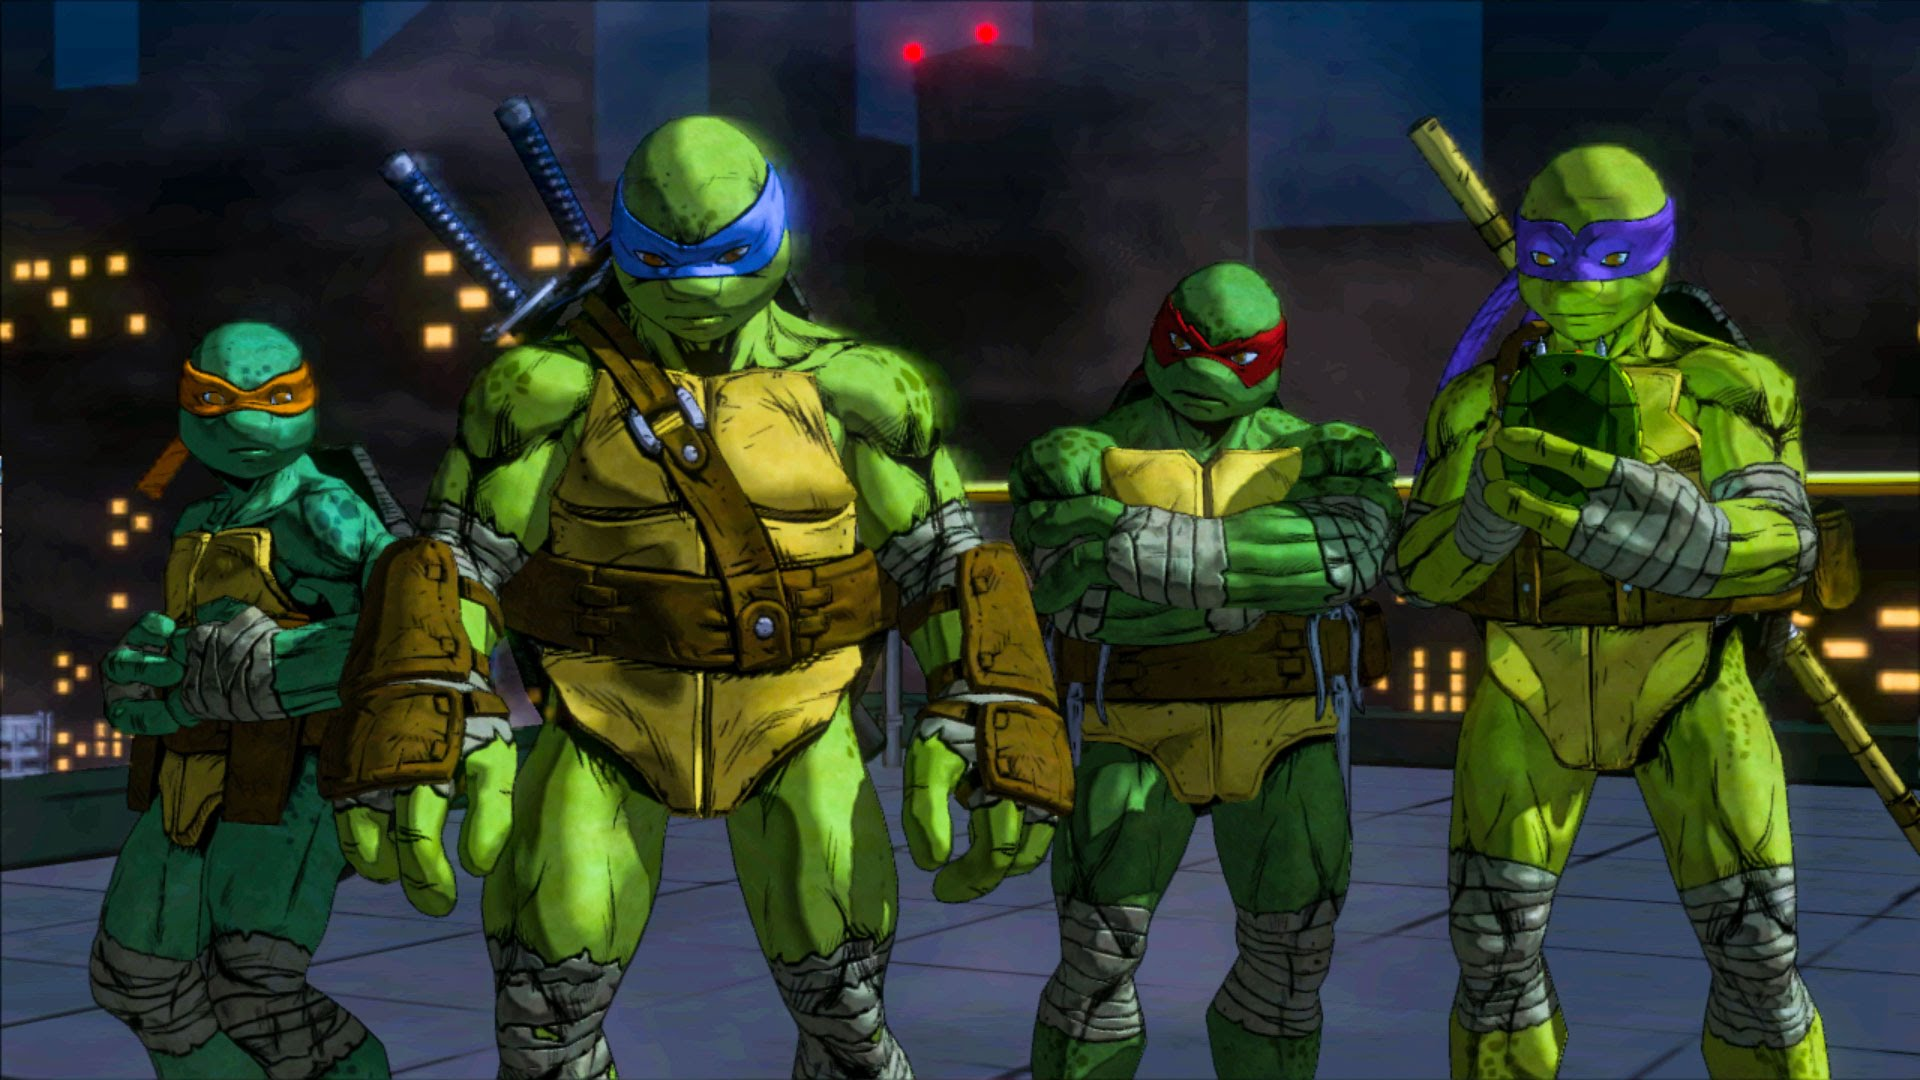 A fost lansat noul Teenage Mutant Ninja Turtles